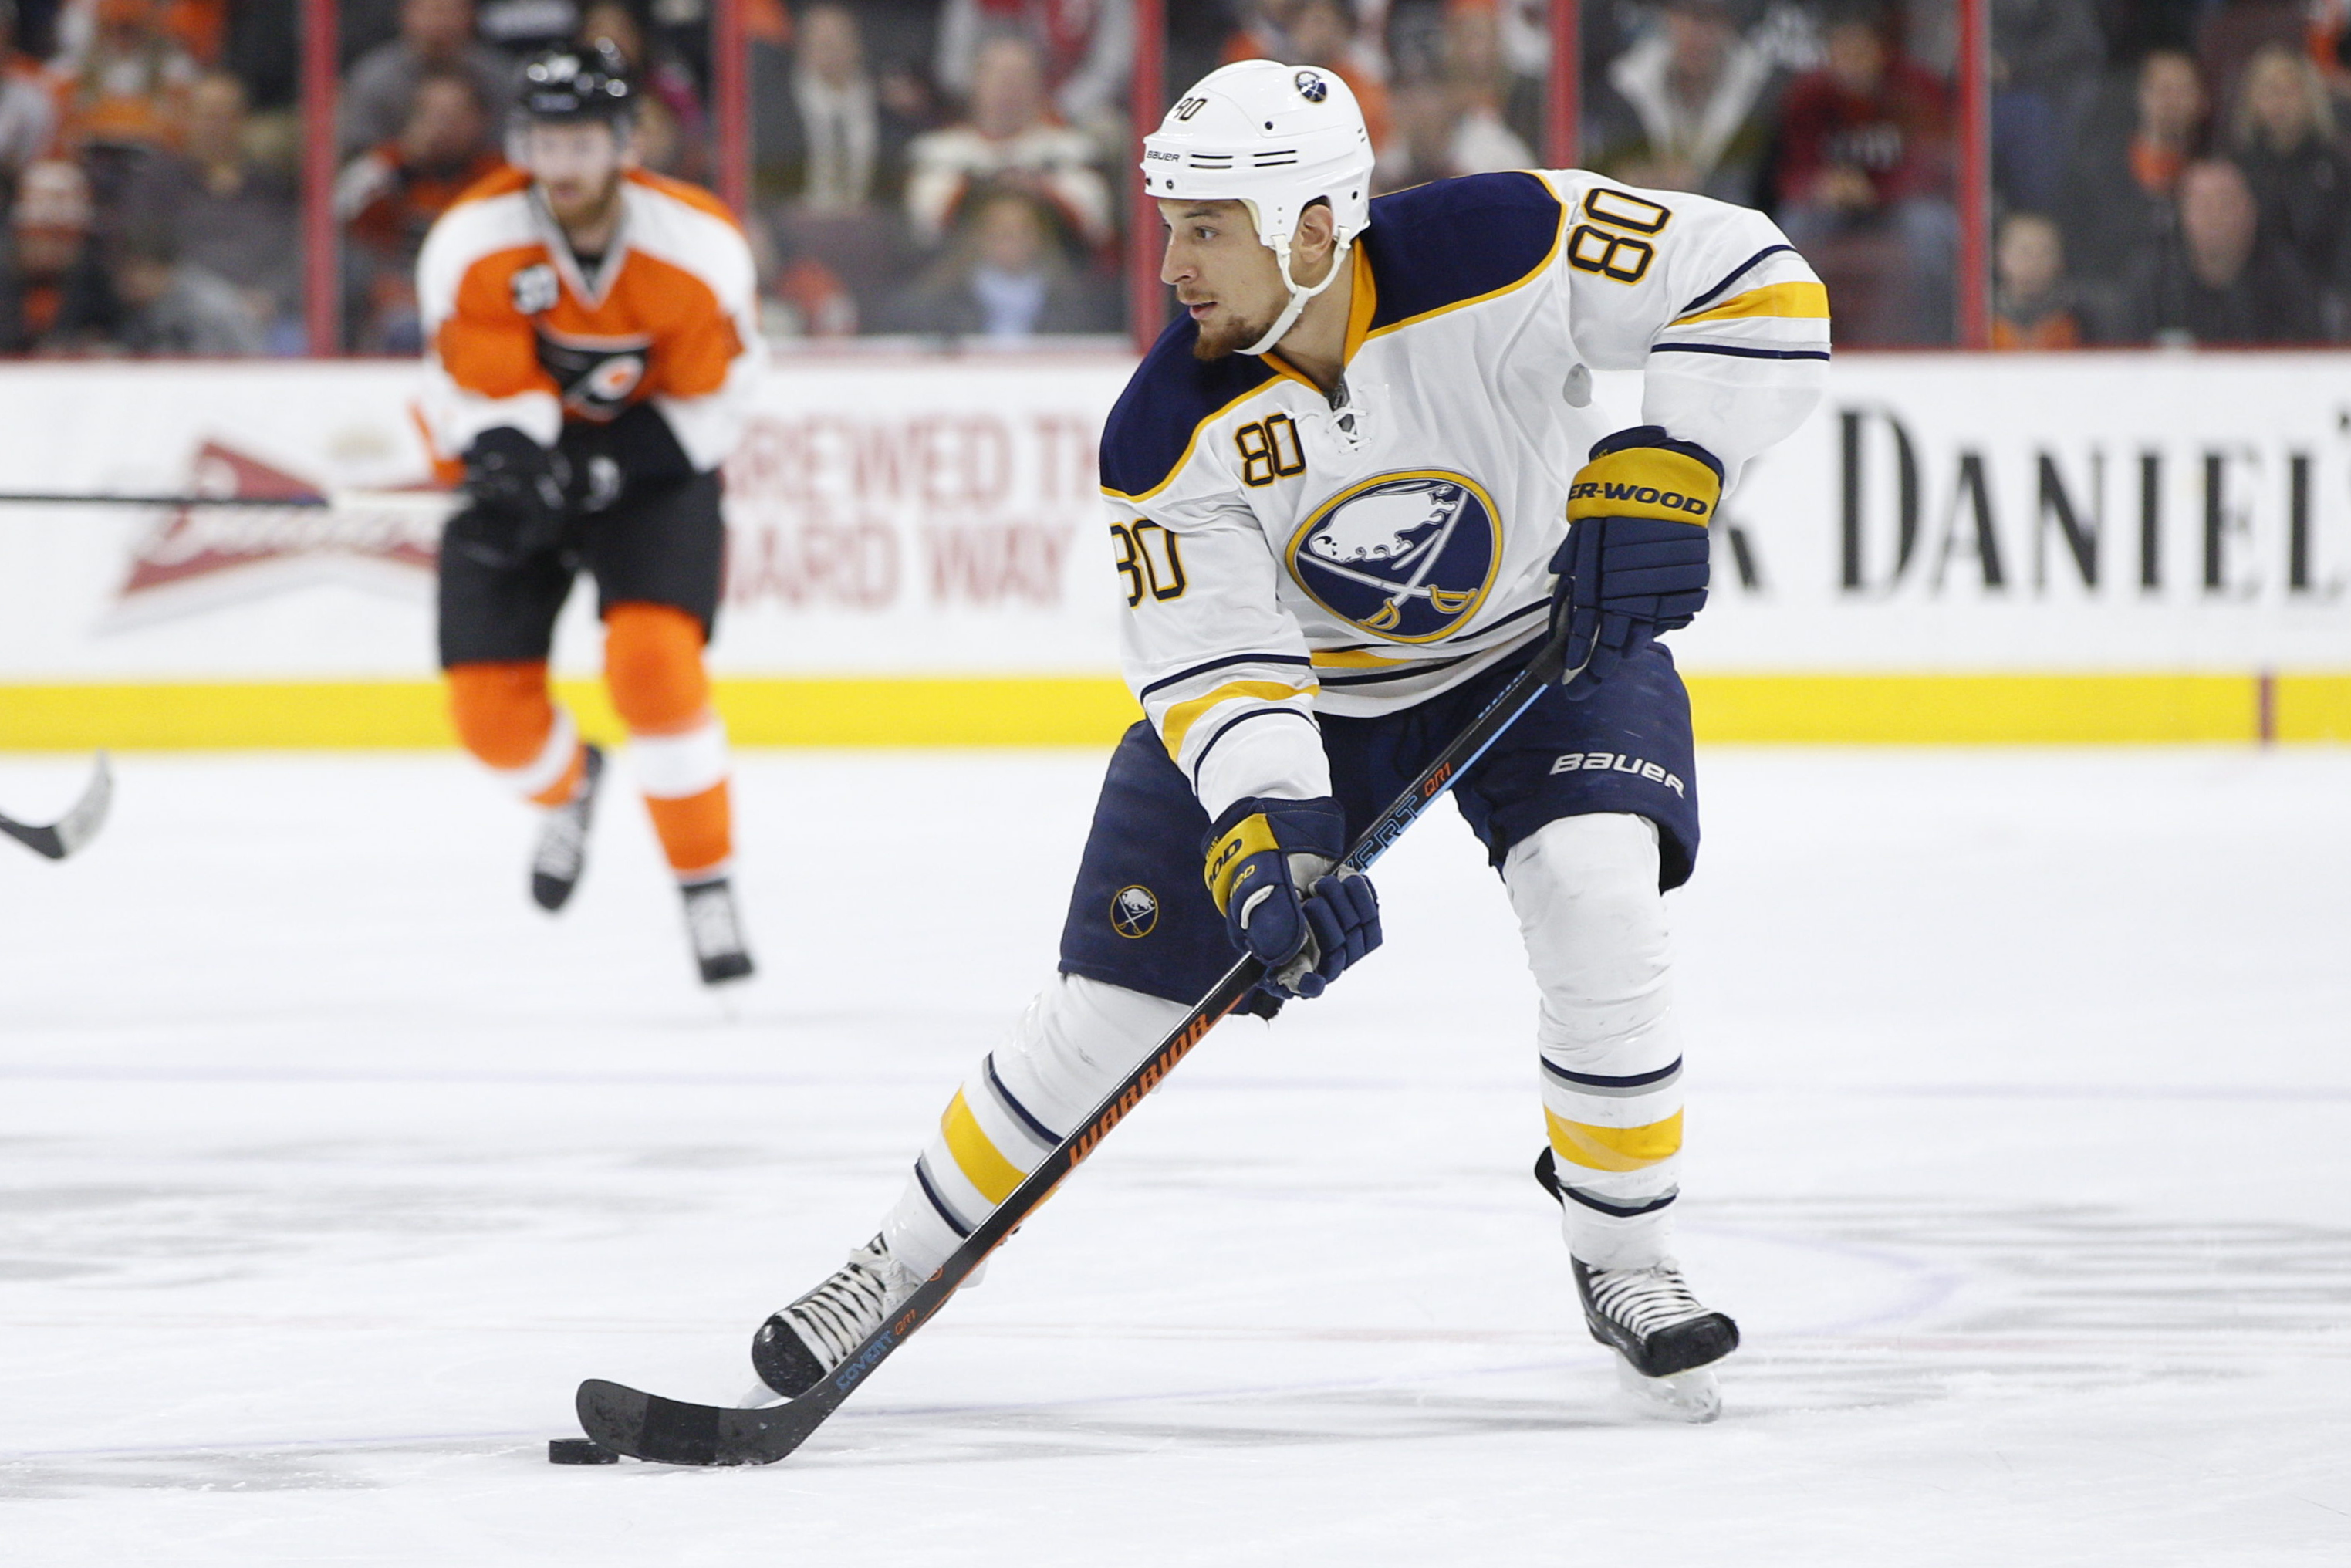 Buffalo Sabres right wing Chris Stewart in action during the first period of an NHL hockey game against the Philadelphia Flyers, Thursday, Feb. 19, 2015, in Philadelphia. Sabres won 3-2 by shootout. (AP Photo/Chris Szagola)